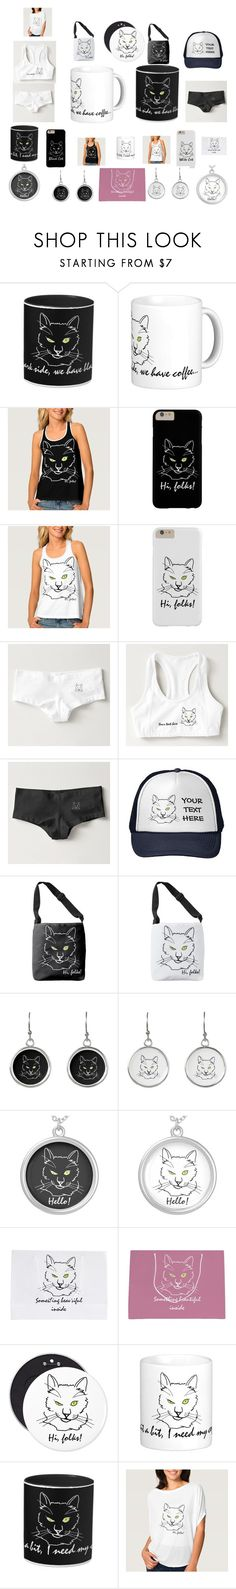 """Cat Black And Cat White"" by polyart-466 ❤ liked on Polyvore"